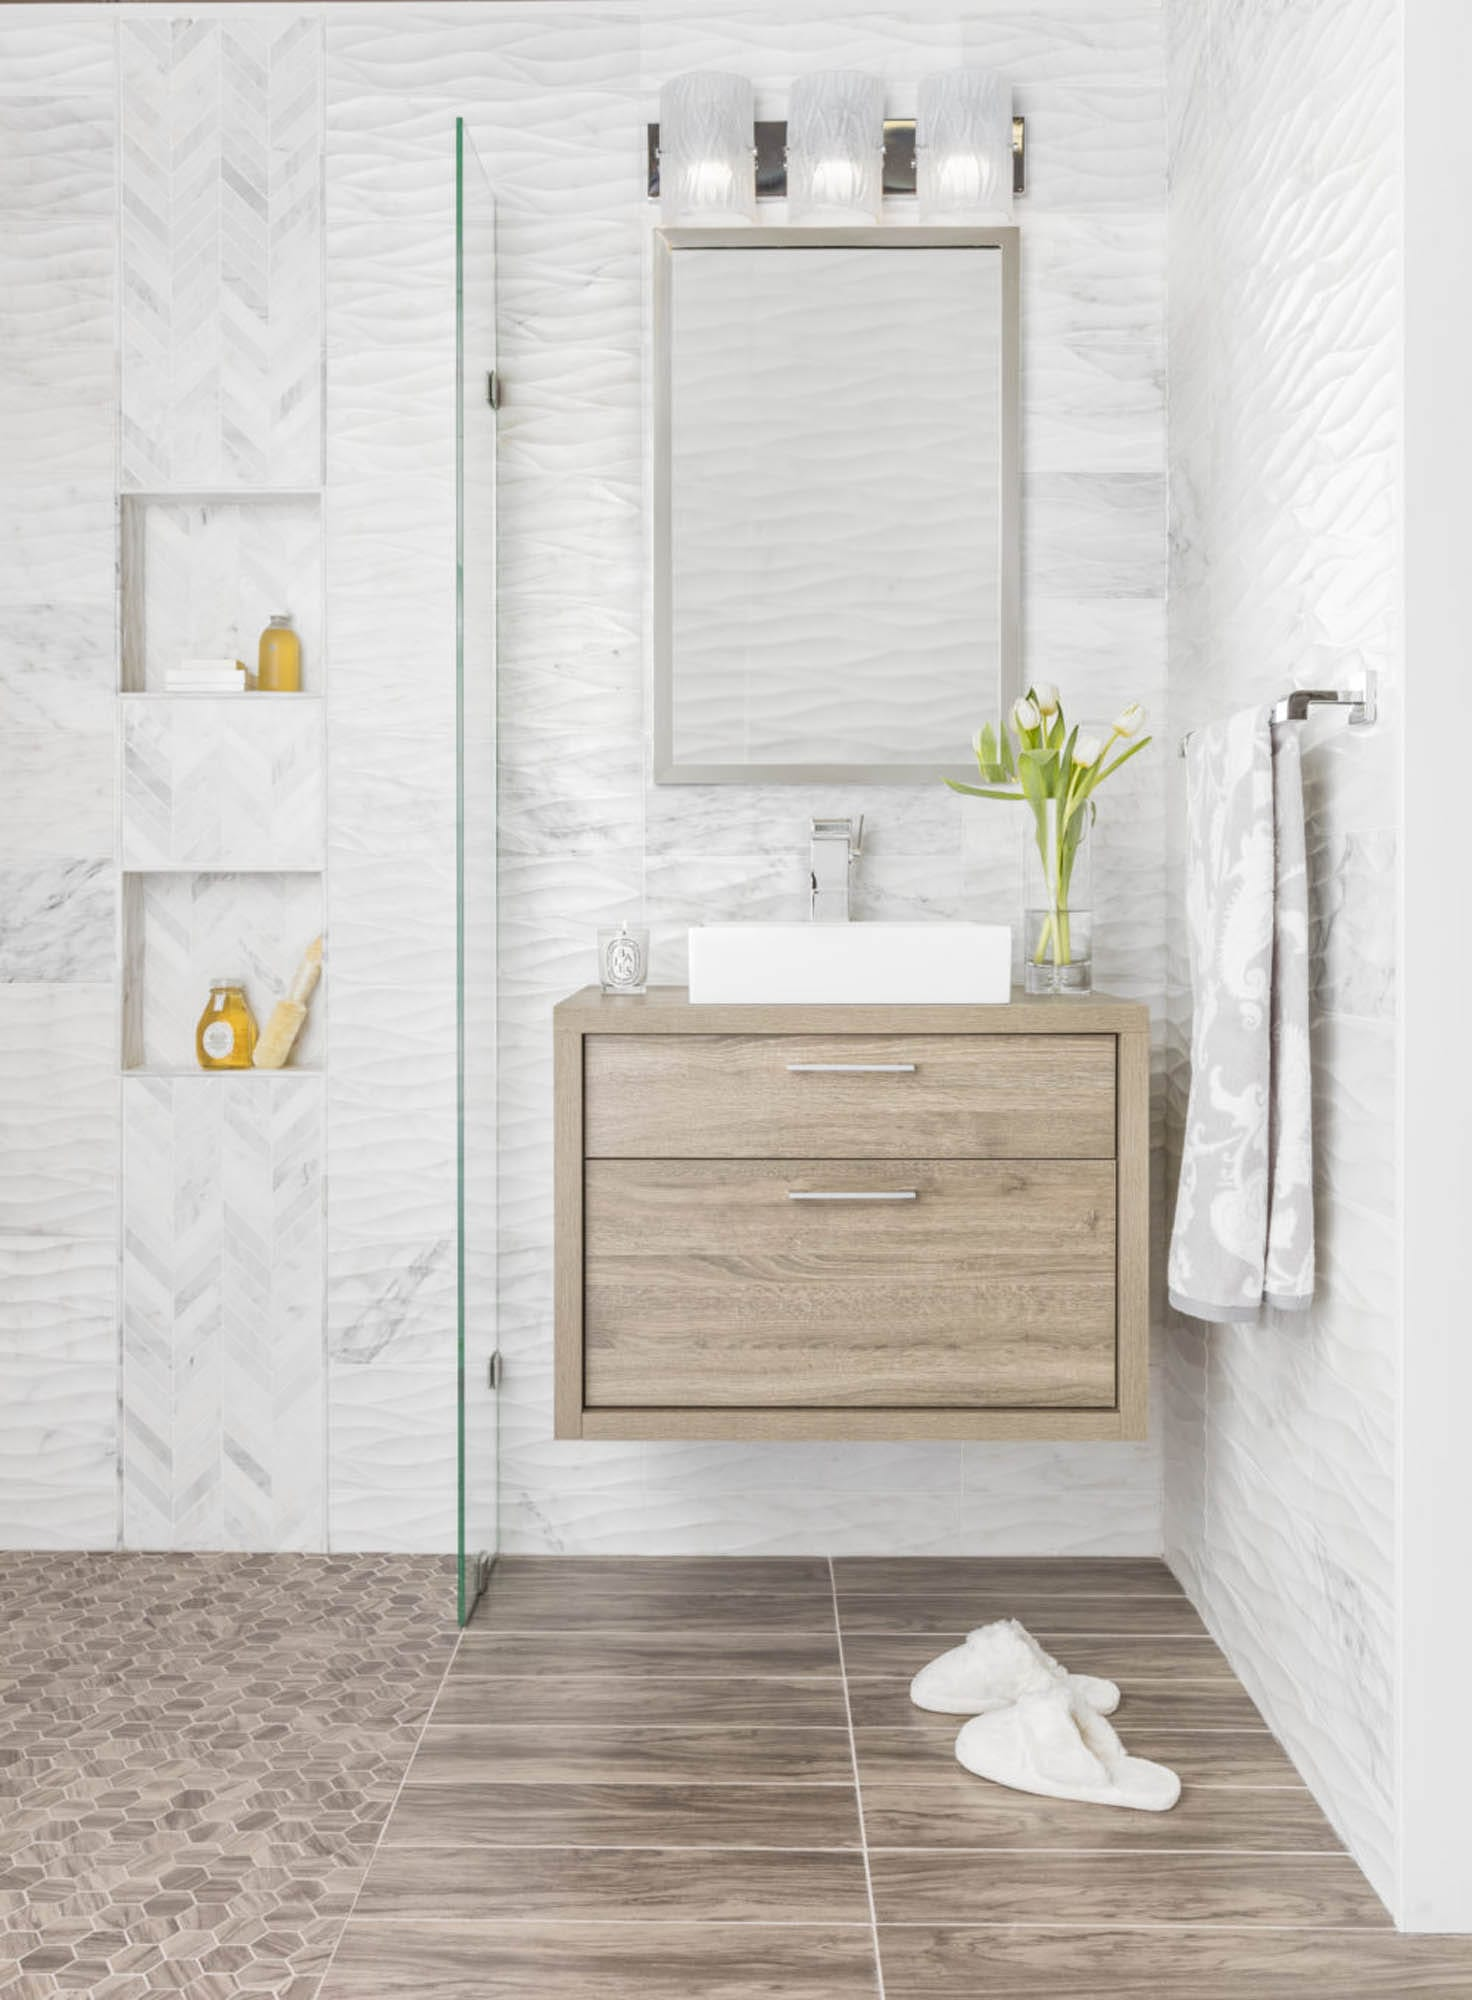 Tried And True Wall And Floor Tile Combinations The Tile Shop Blog